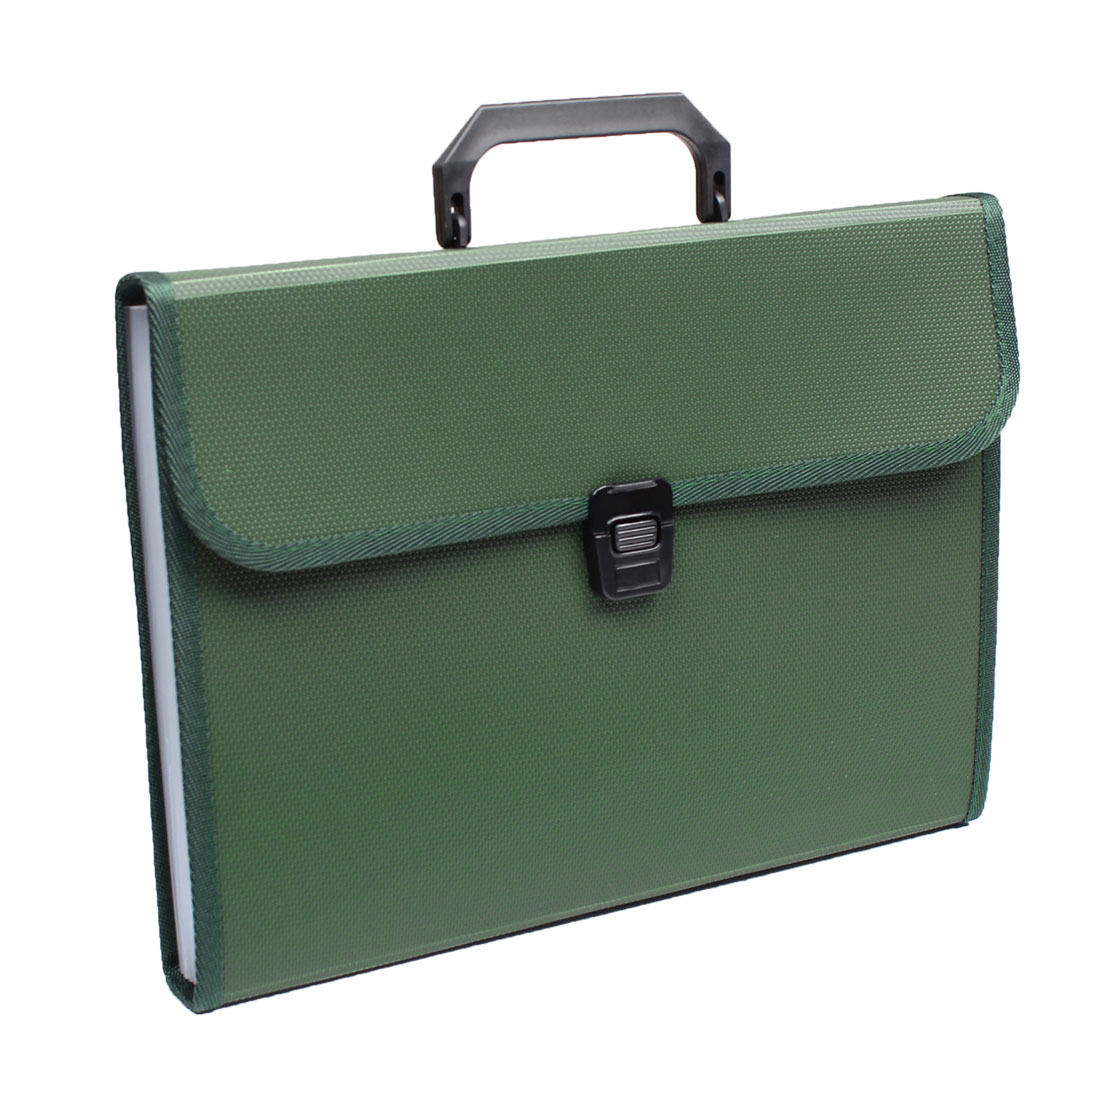 Button Closure Green Plastic File Document Holder Organizer 13 Slot Briefcase